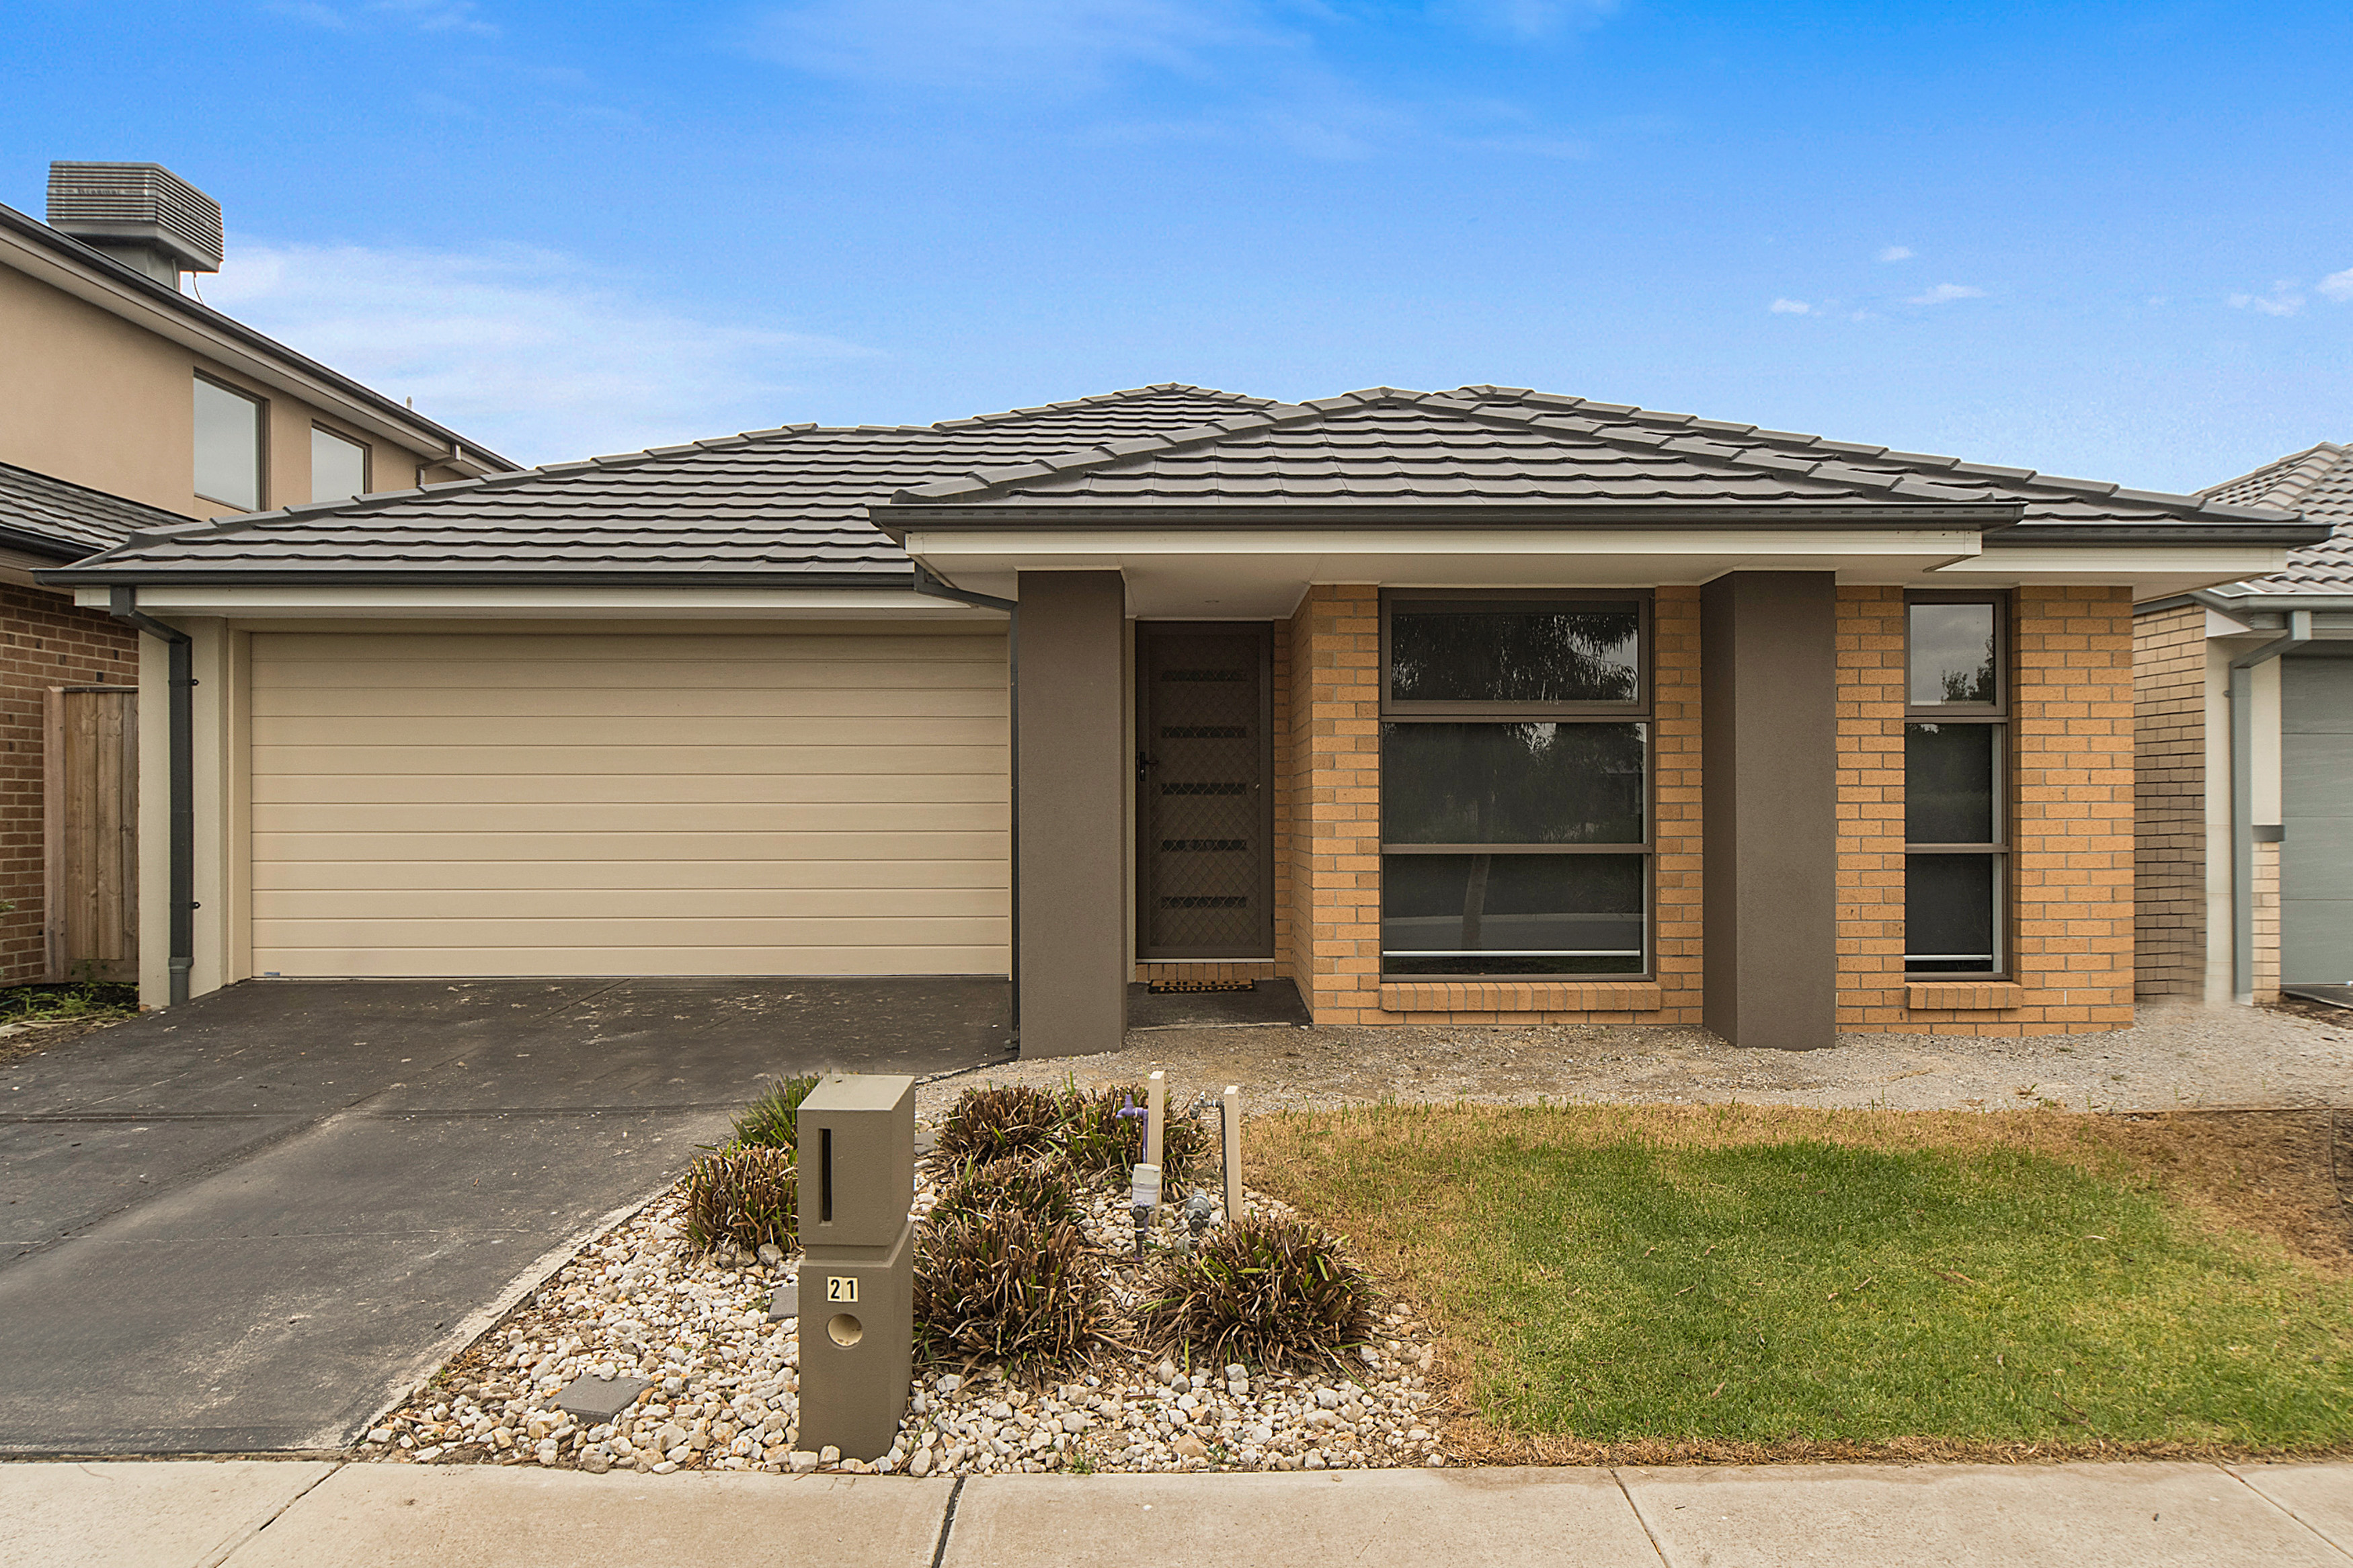 21 Leyland Drive, NARRE WARREN SOUTH, VIC, 3805 - Image